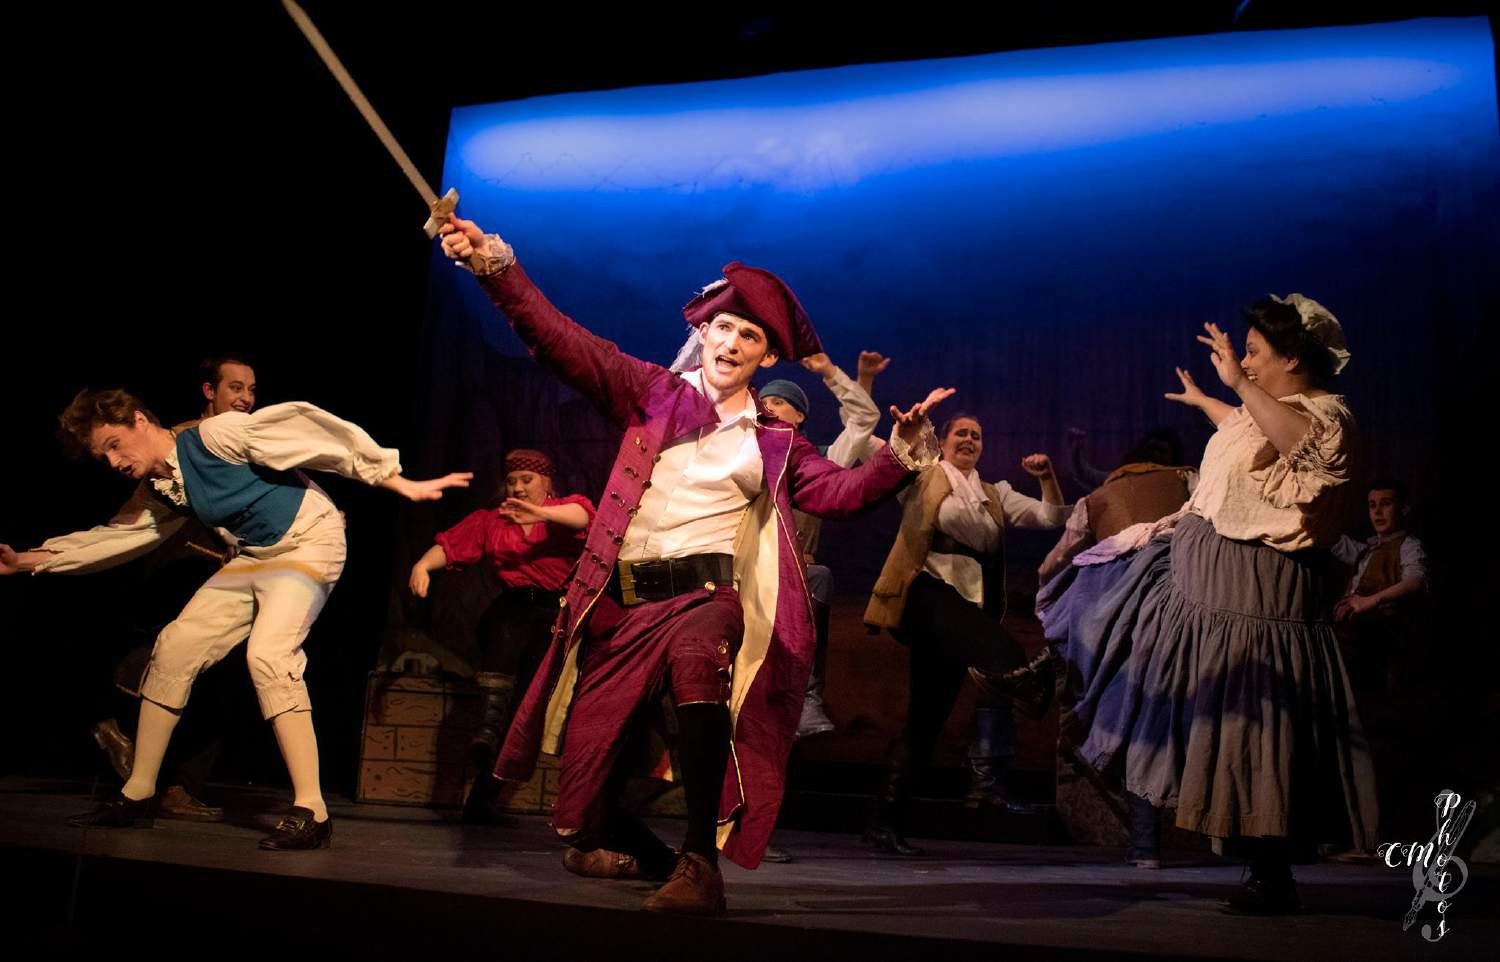 Theatre Review: The Pirates of Penzance